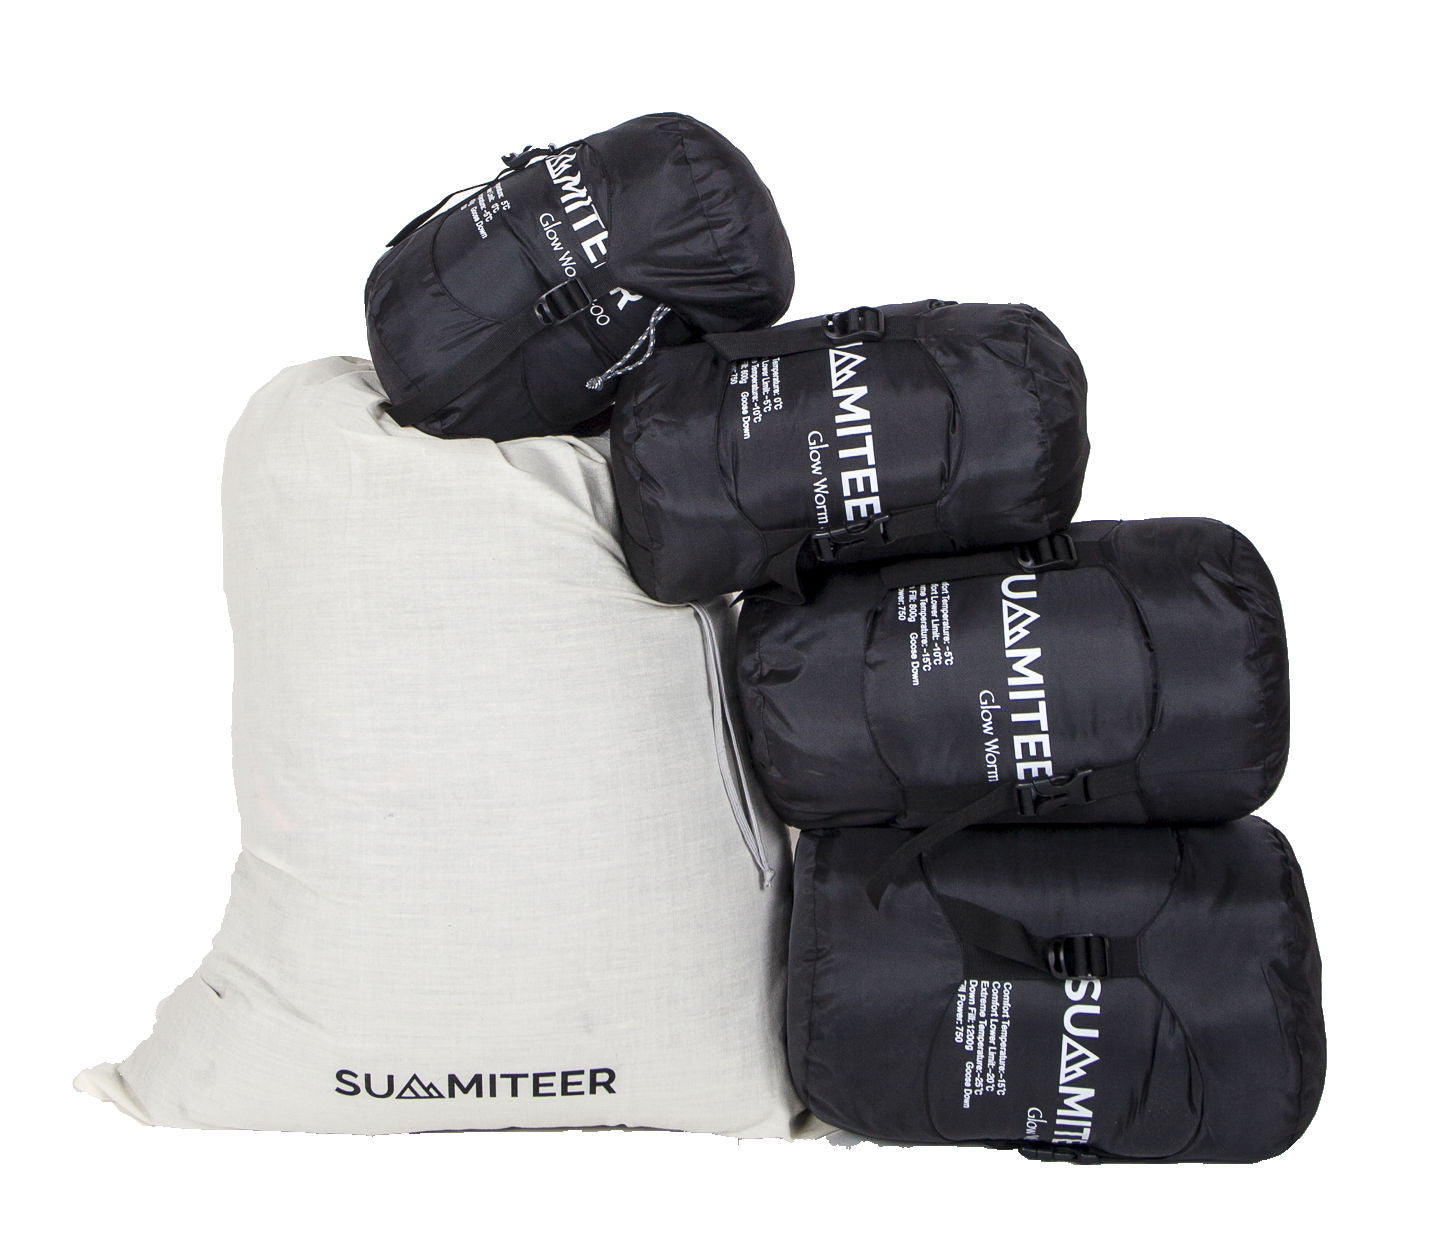 Summiteer Glow Worm 800 Sleeping Bag - Summiteer Outdoor Equipment